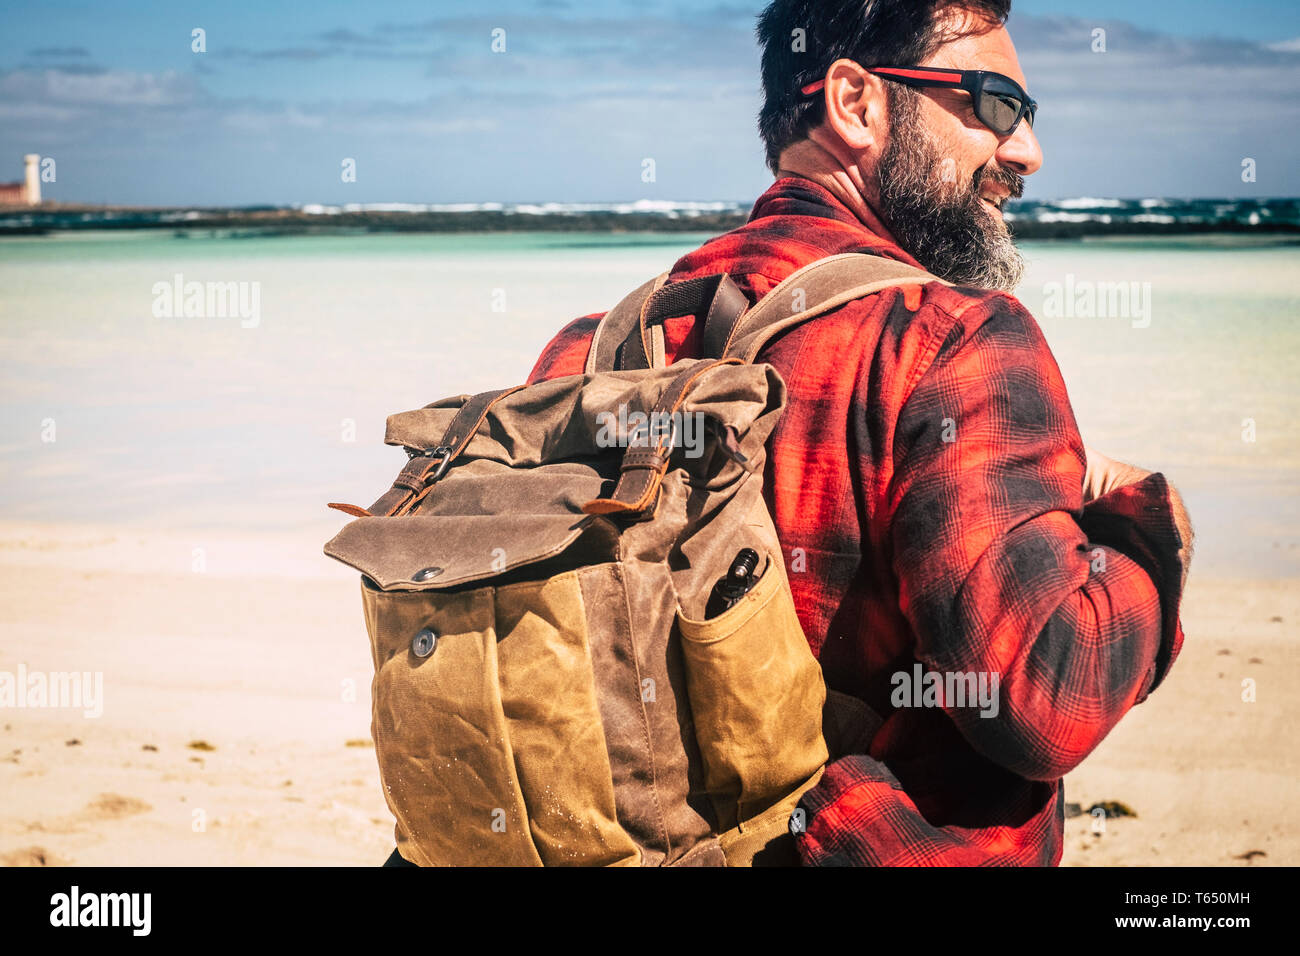 Travel and backpack wanderlust concept people with adult hipster man with beard and sunglasses enjoying the outdoor leisure activity with beach and be Stock Photo